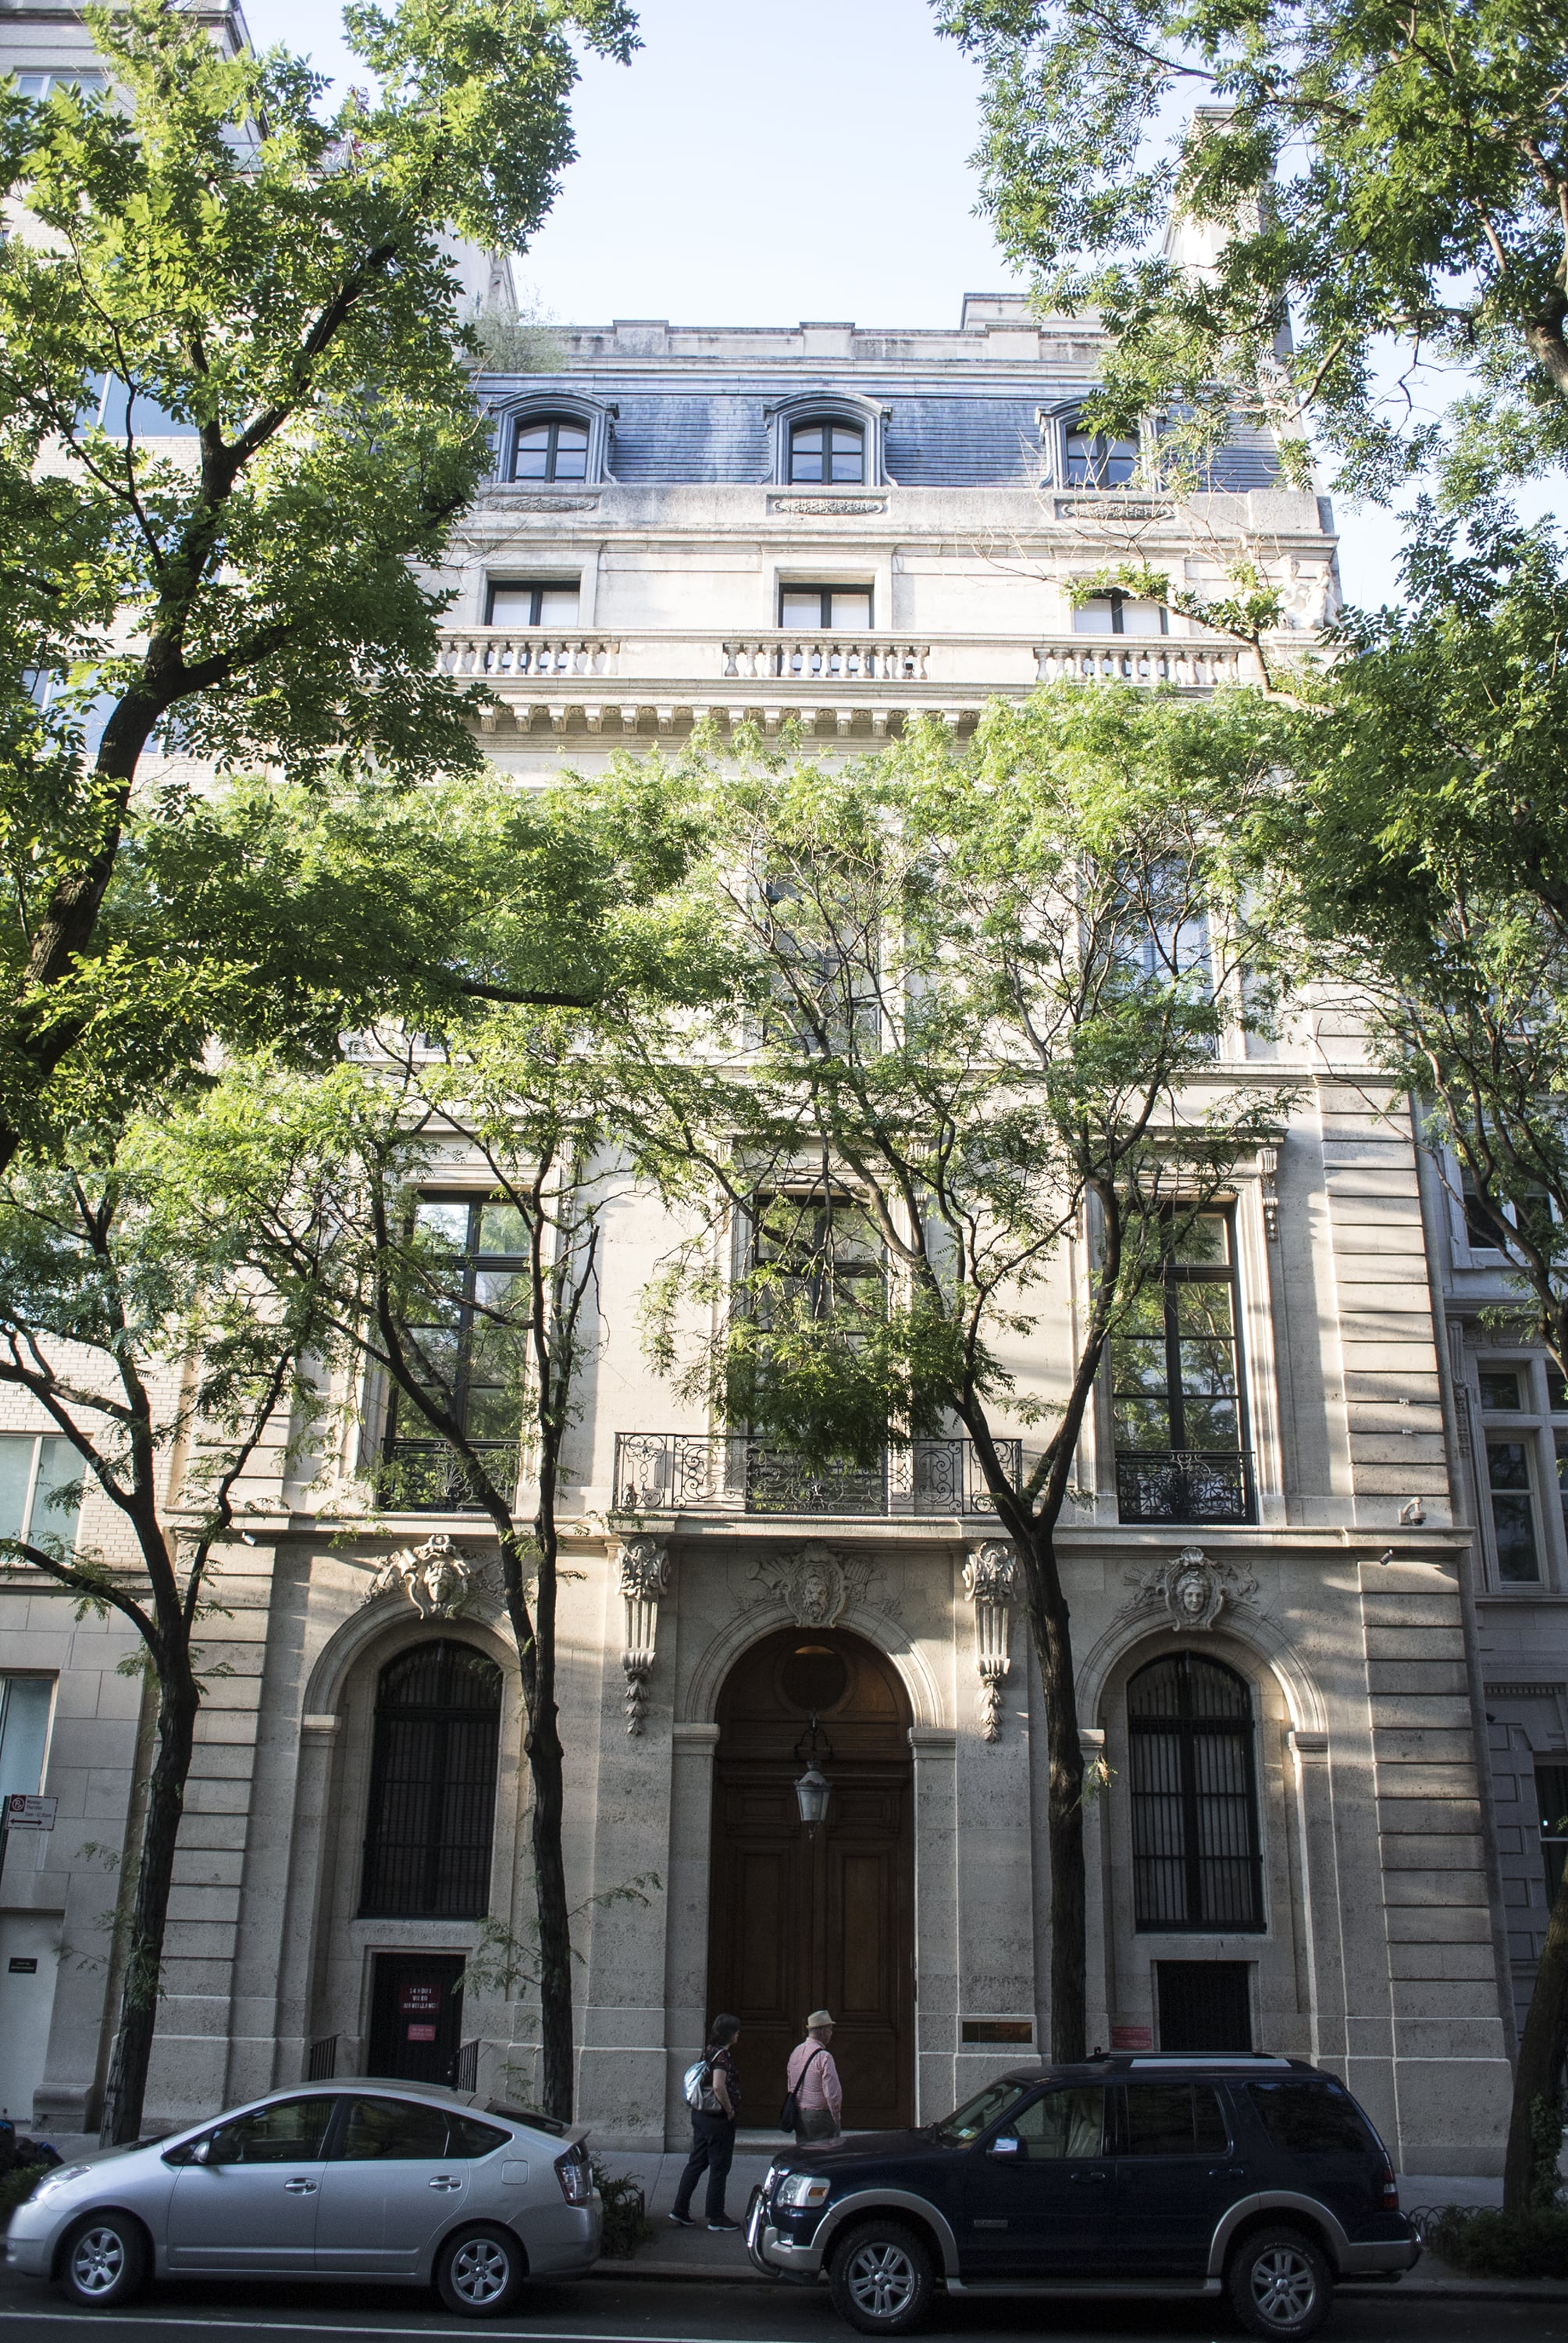 NEW YORK, NY - July 9]:  MANDATORY CREDIT Bill Tompkins/Getty Images       The townhouse where the financier Jeffrey Epstein is accused of engageing in sex acts with underage girls is one of the largest private homes in Manhattan. The seven-story residence is at 9 East 71st Street, between Fifth and Madison Avenues.  Photographed       on July 9, 2019  in New York City. (Photo by Bill Tompkins/Getty Images)